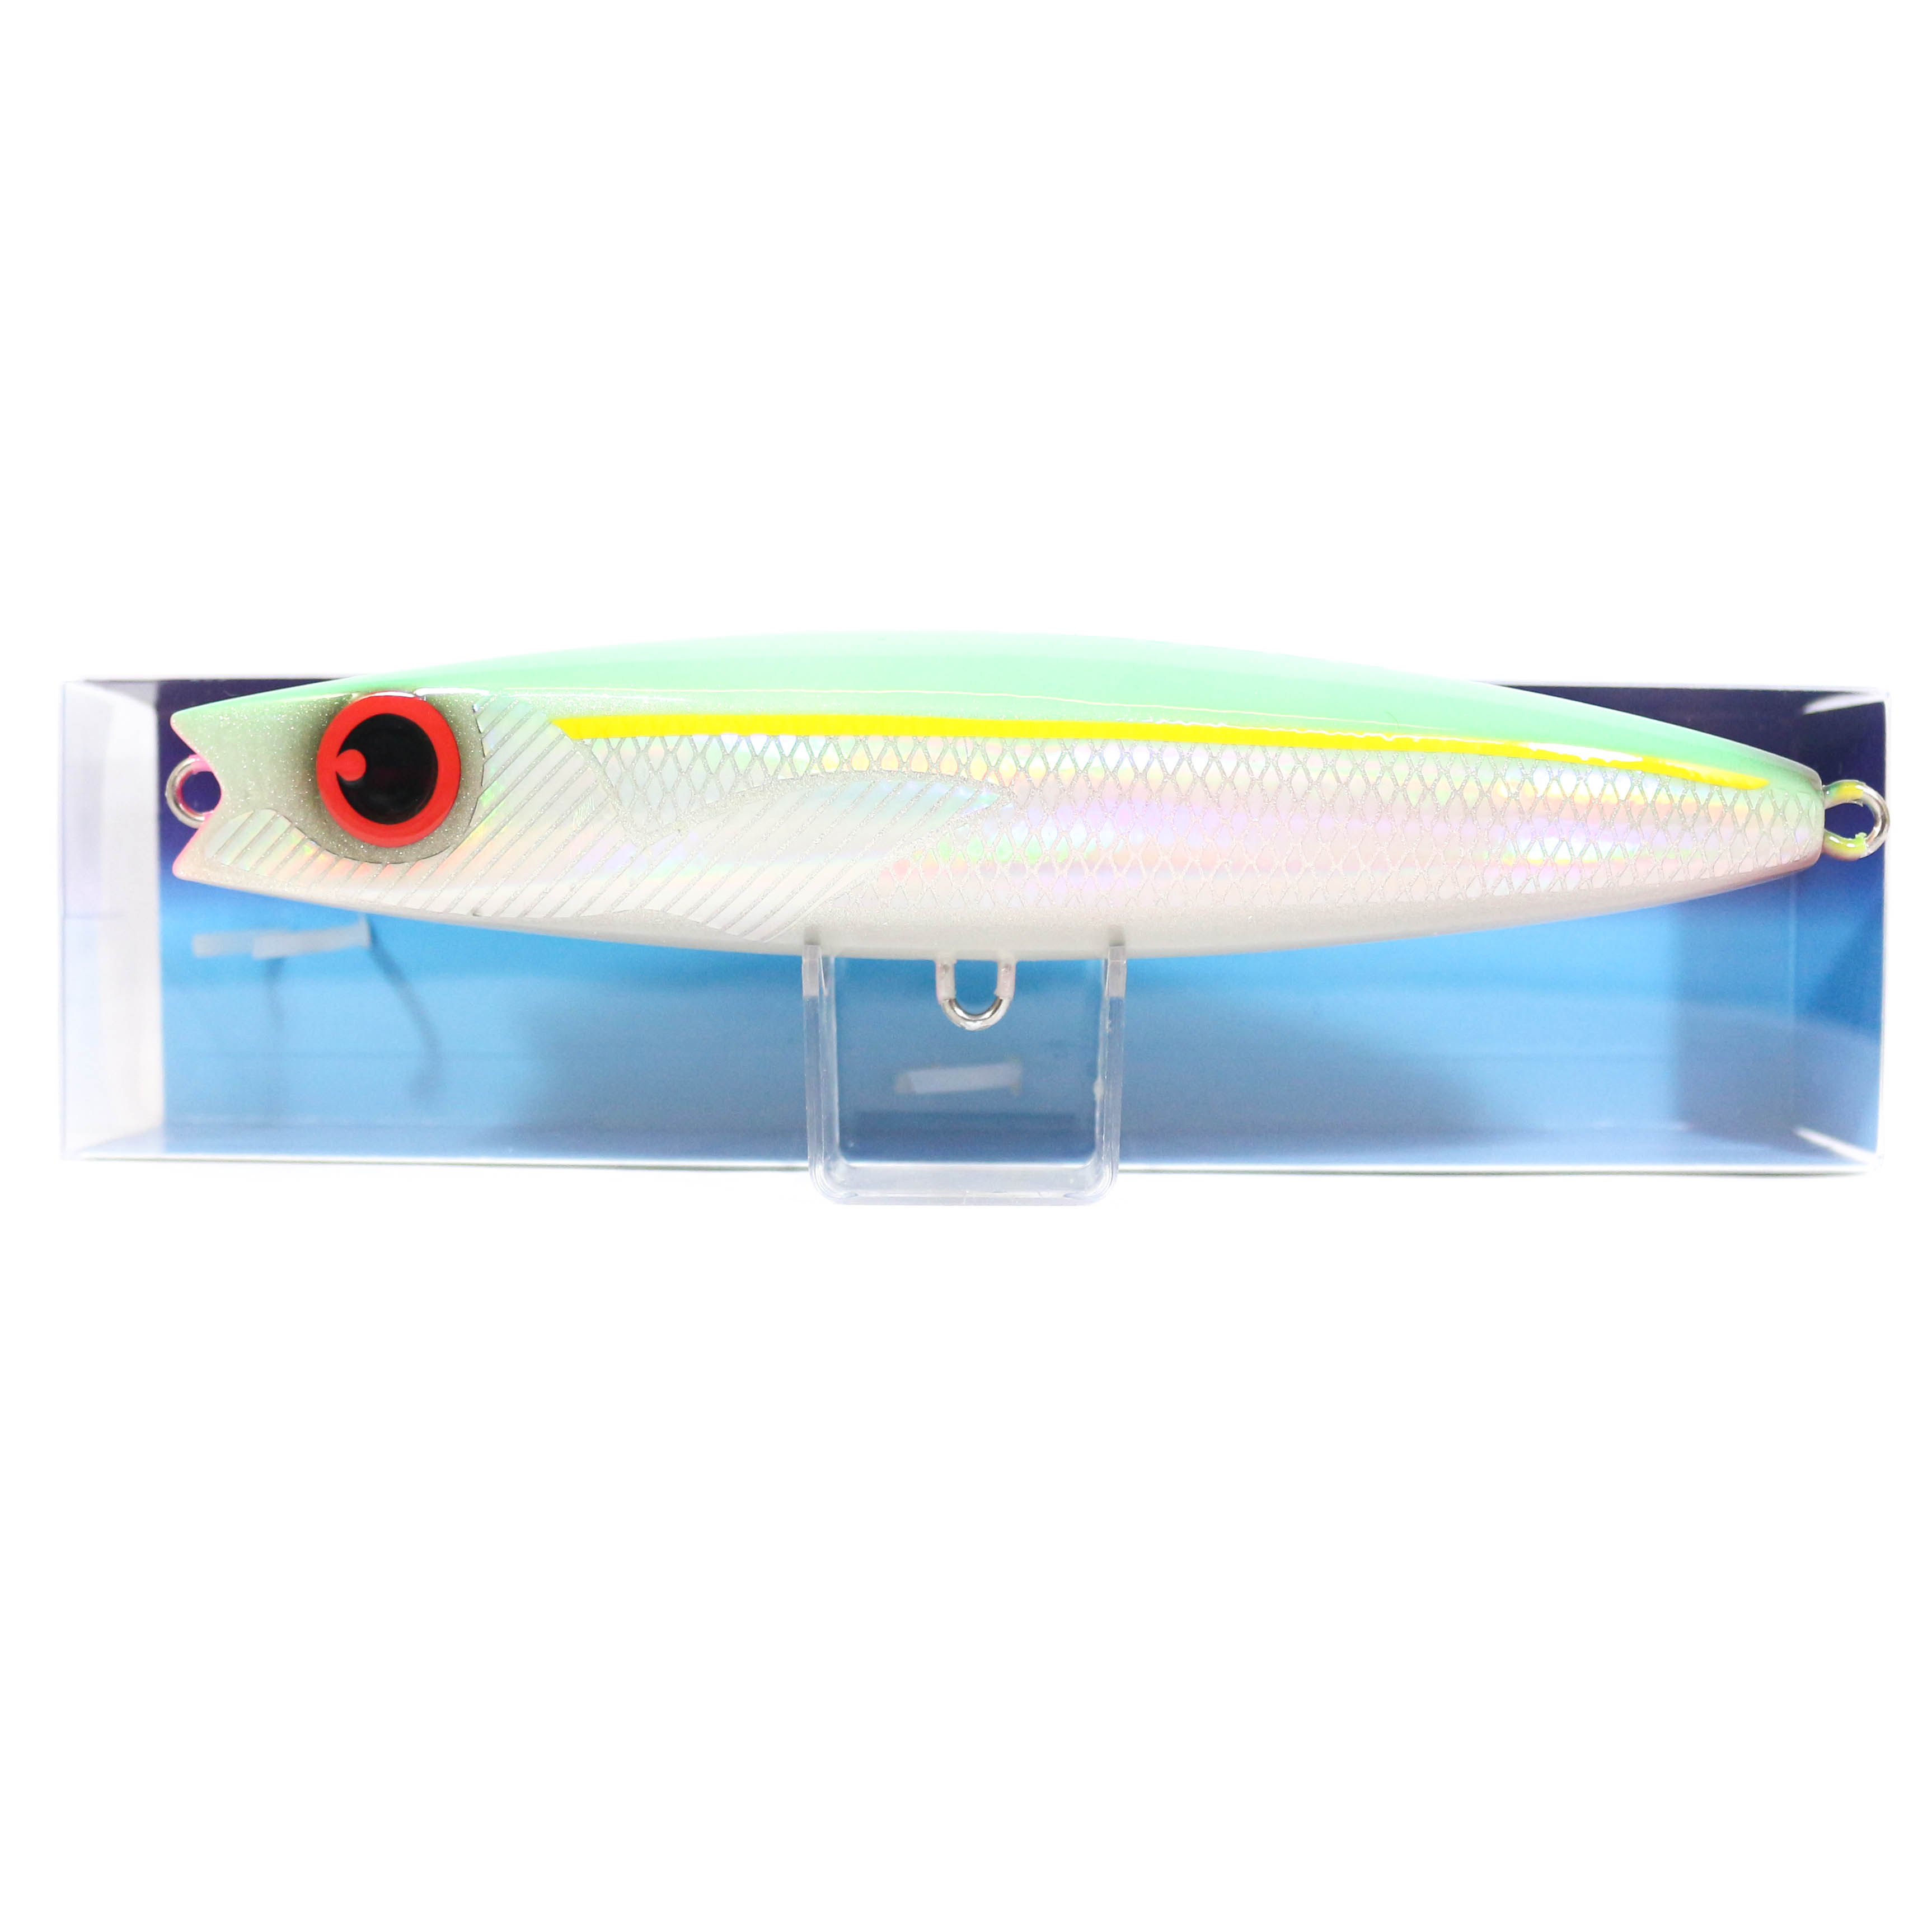 FCL Labo Stick Bait CSP EXT 170S Sinking Lure BNF (4250)